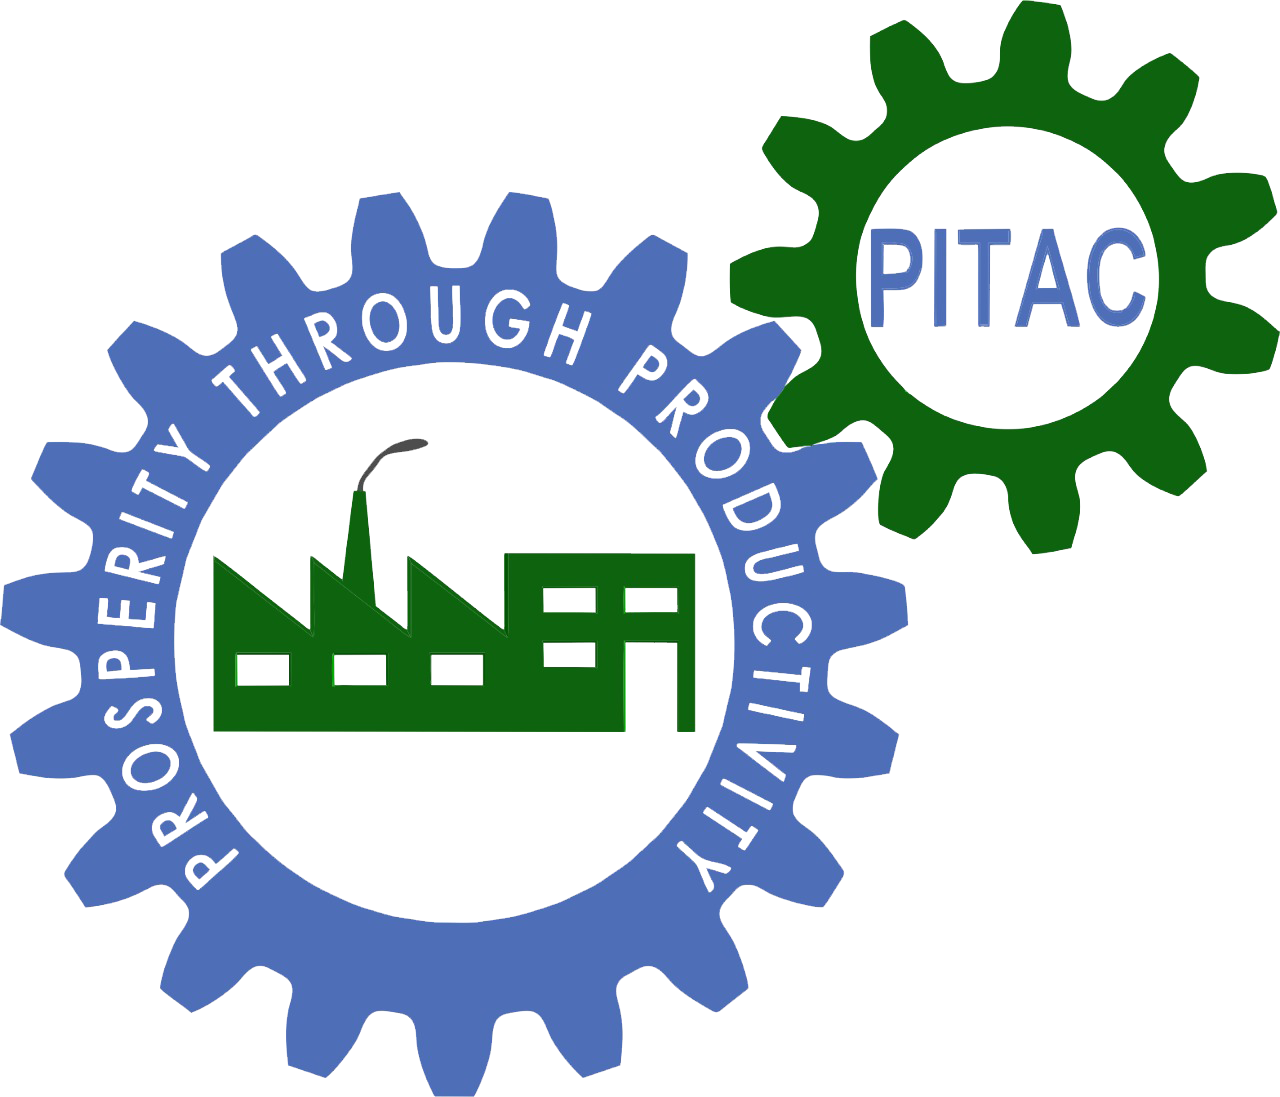 Pakistan Industrial Technical Assistance Pitac Admissions